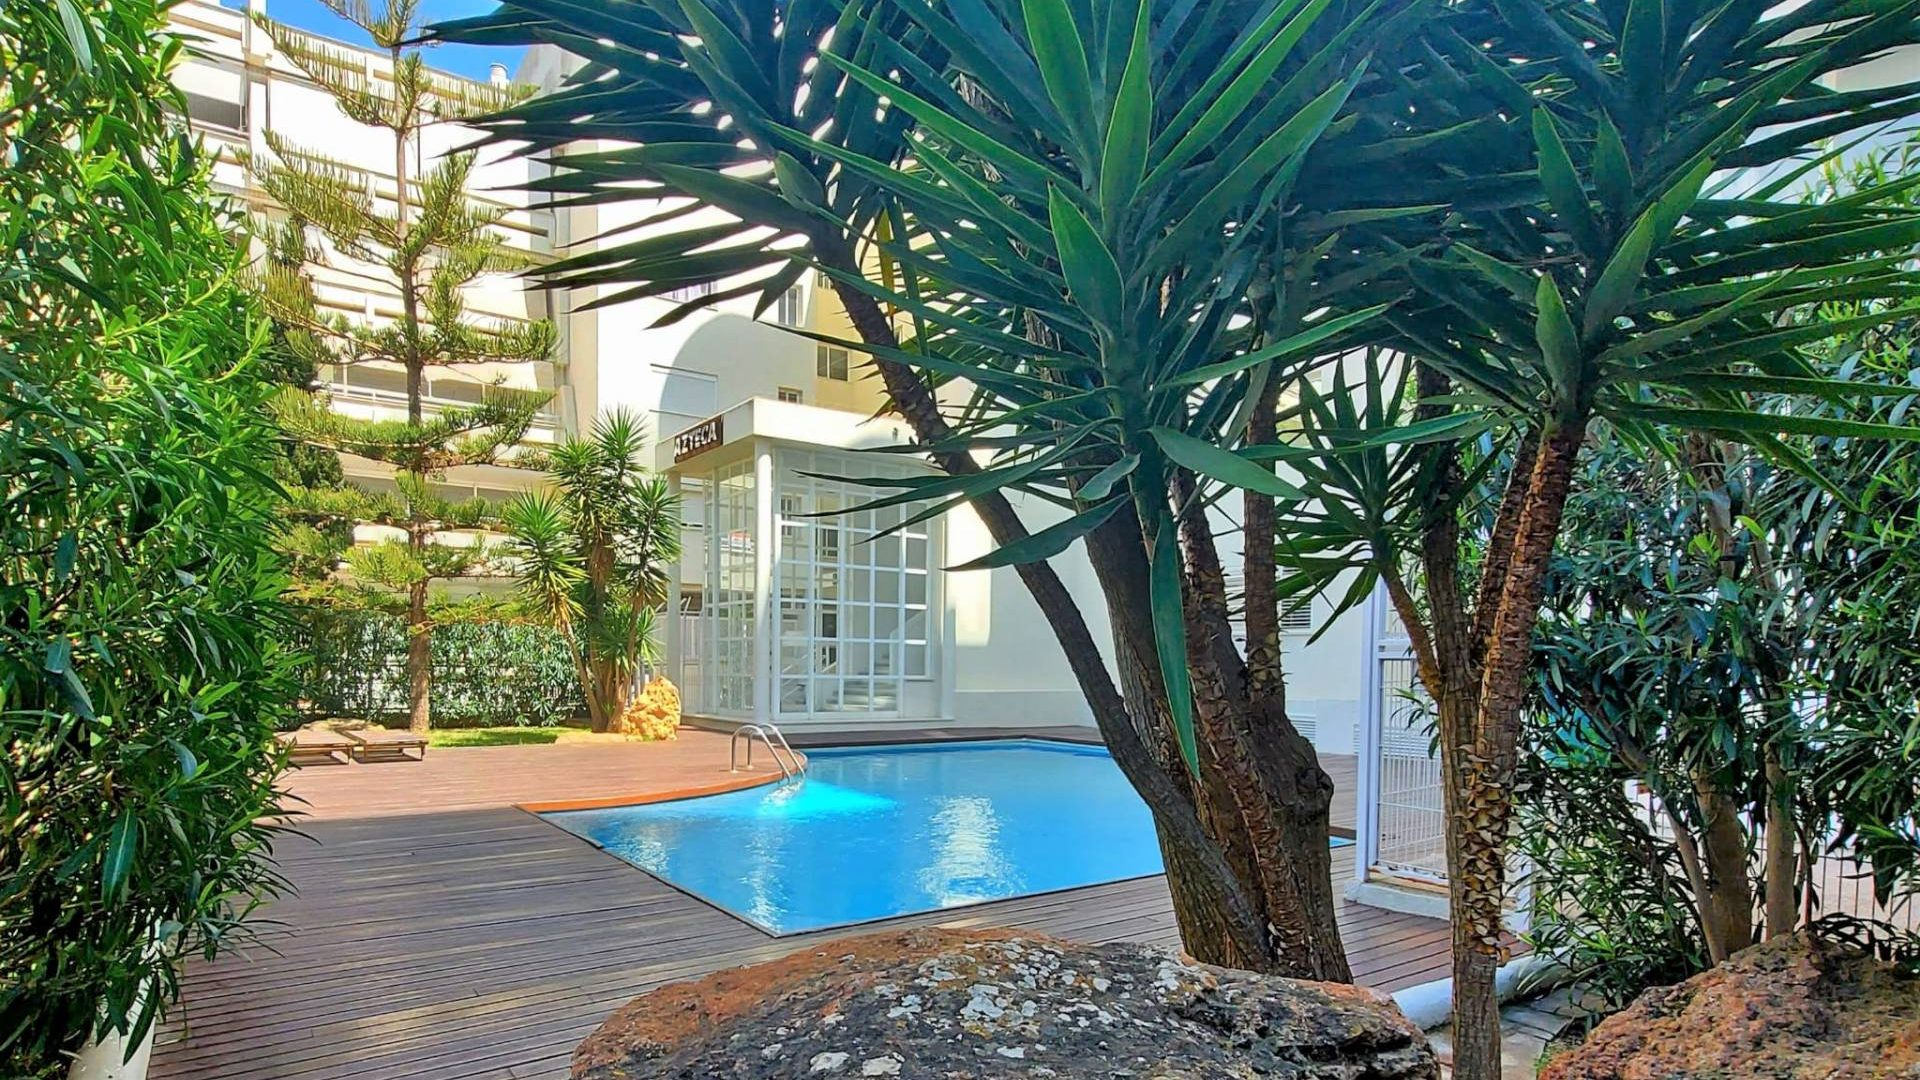 Ground floor flat in prime location with community pool for sale